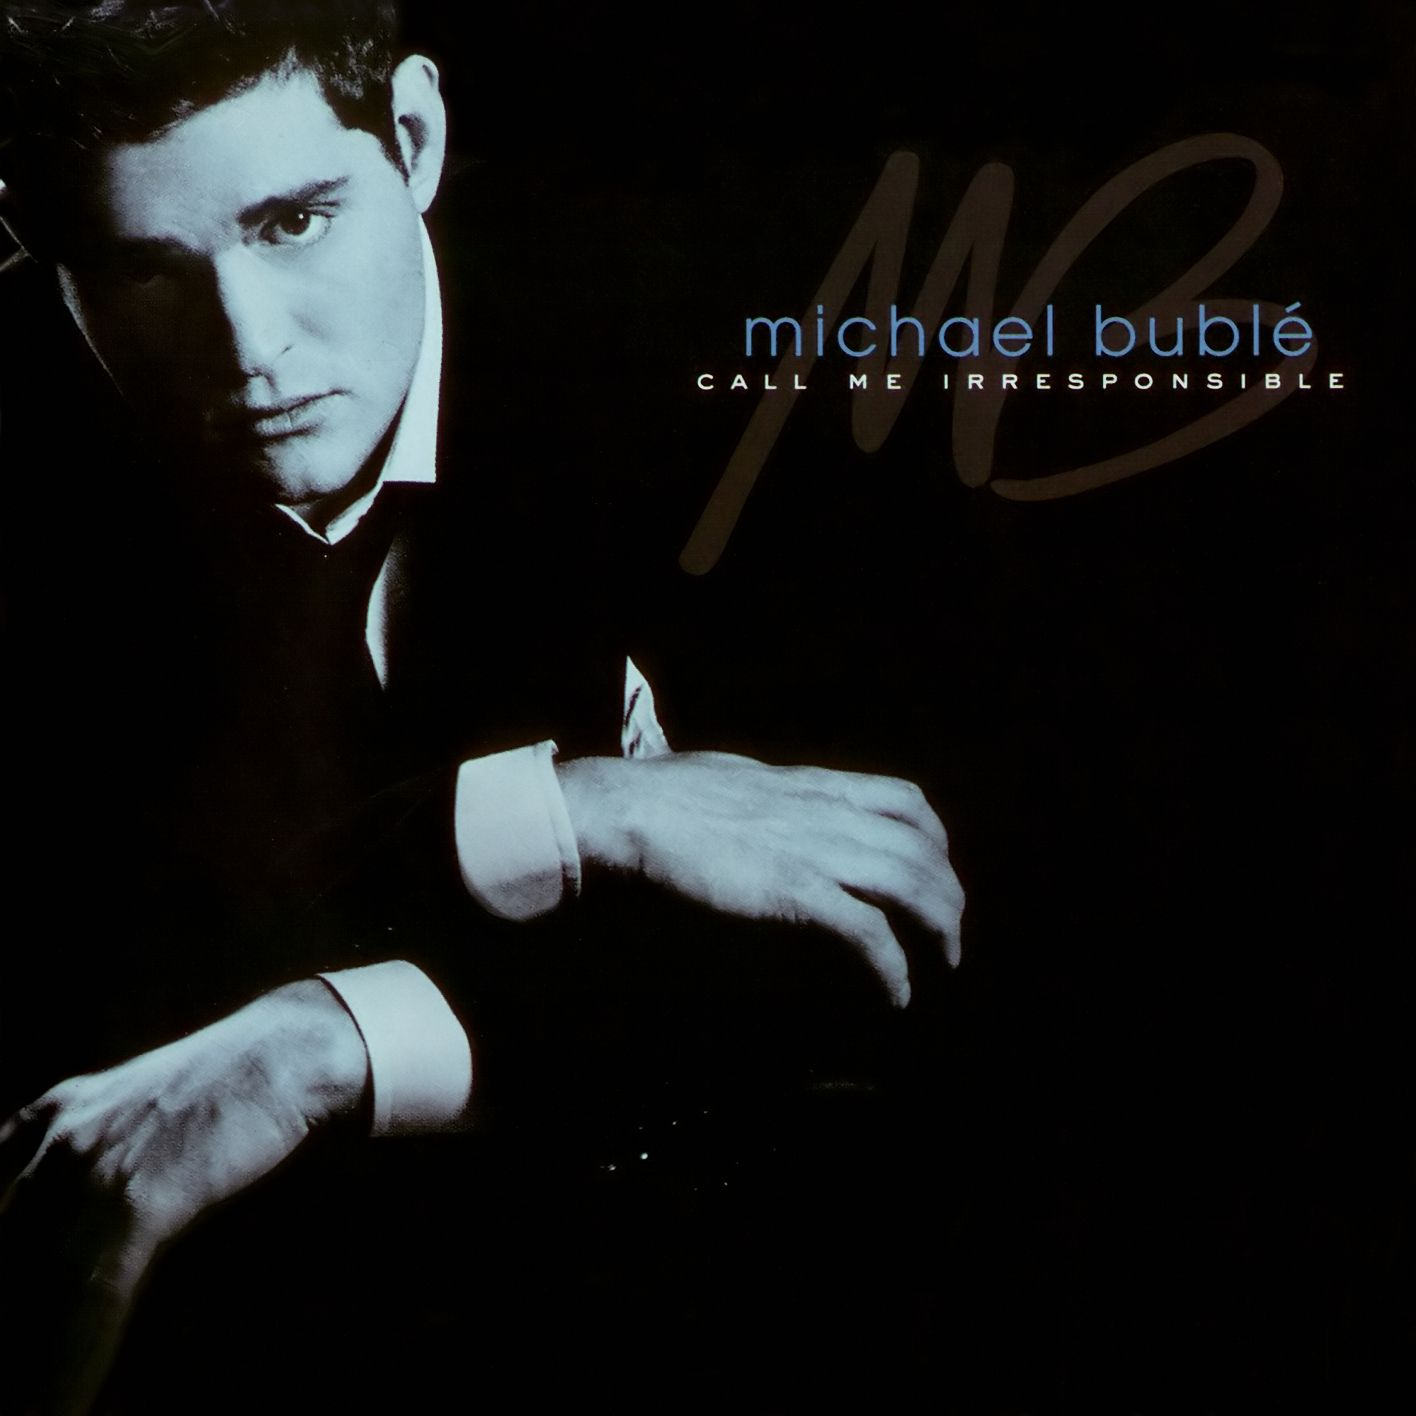 Michael Bublé - Call Me Irresponsible album cover